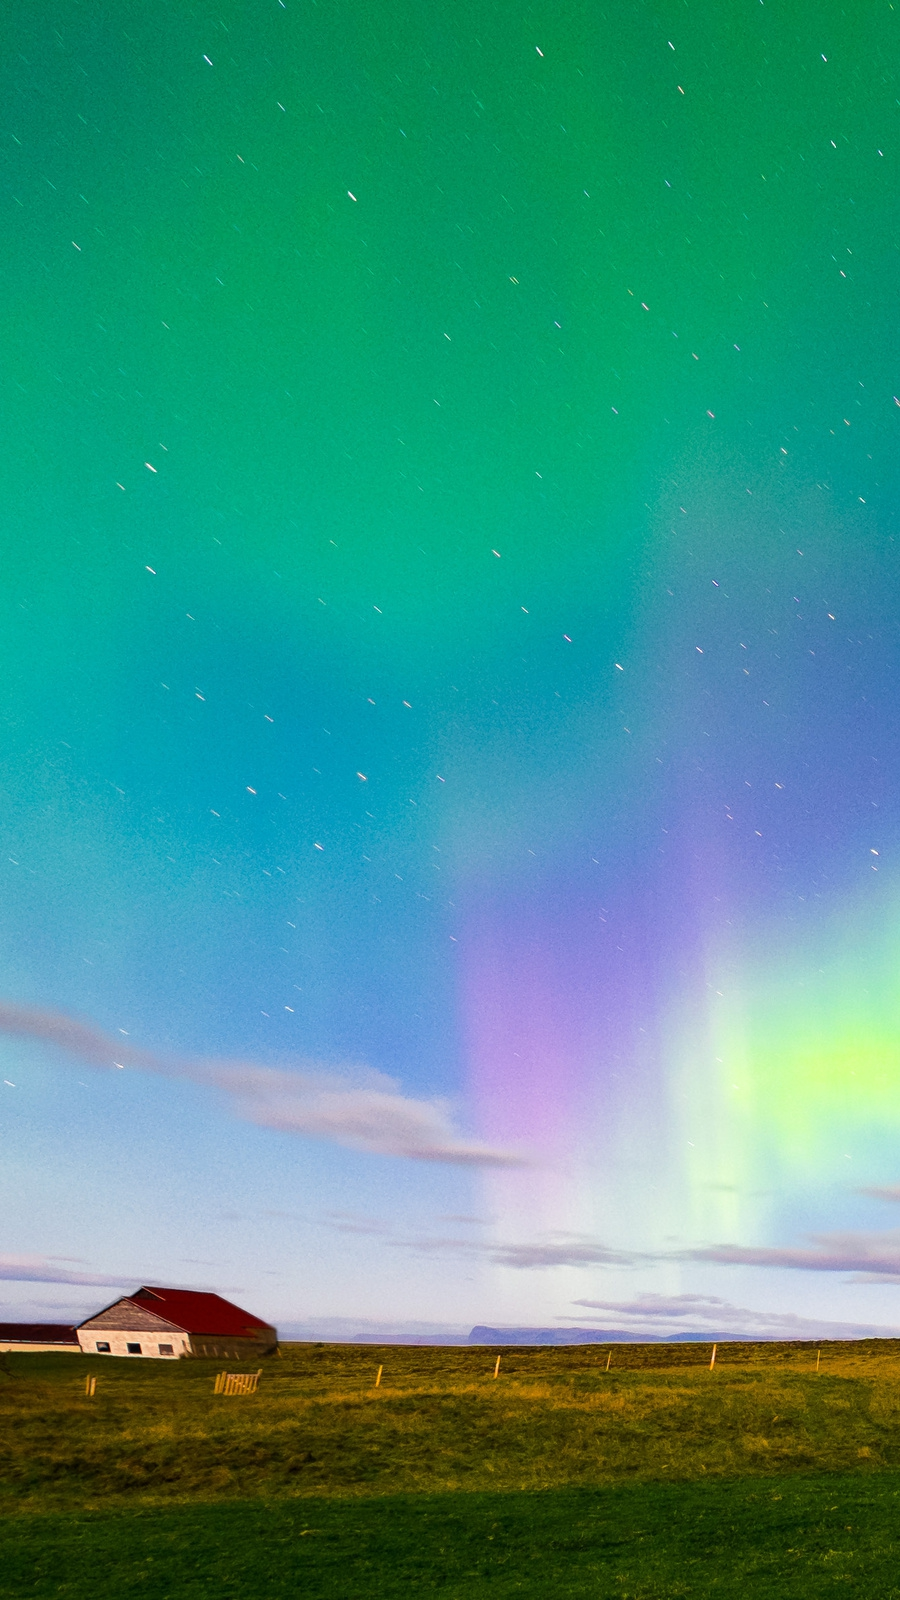 Iphone Wallpaper Cute Quotes Iceland Aurora Borealis Northern Lights Iphone Wallpaper